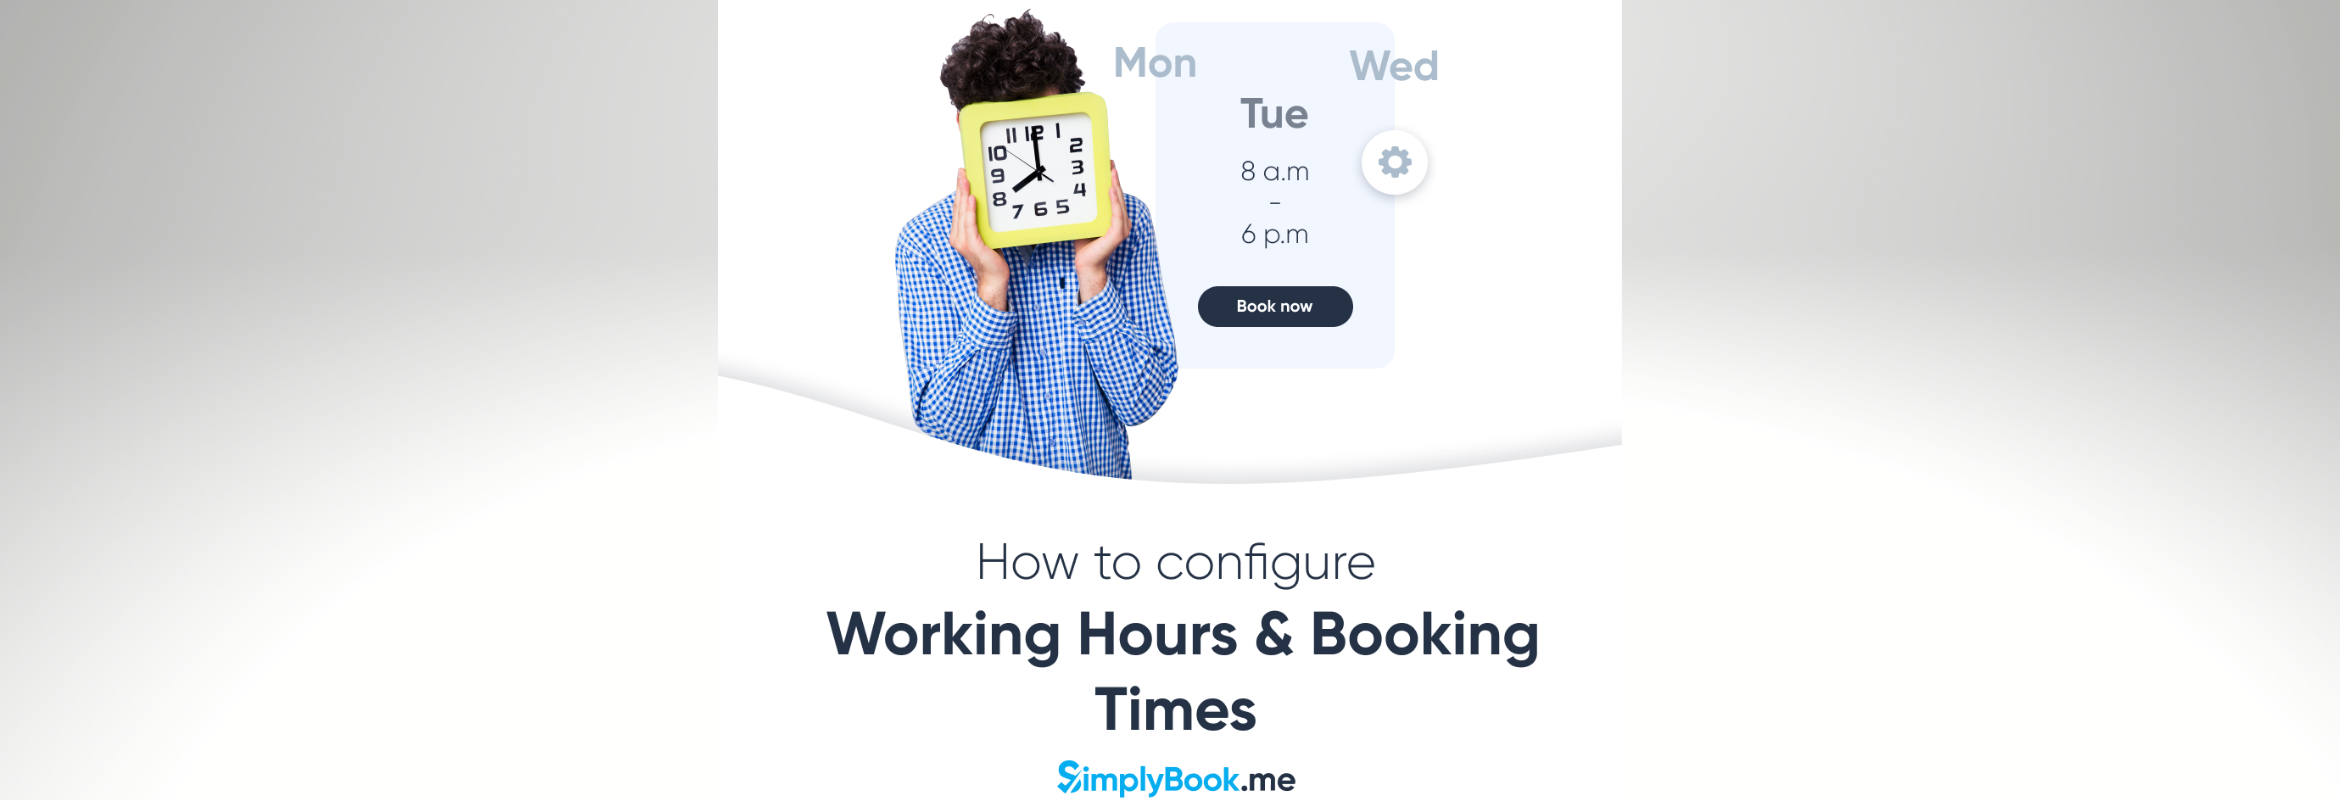 Configure working hours and booking times